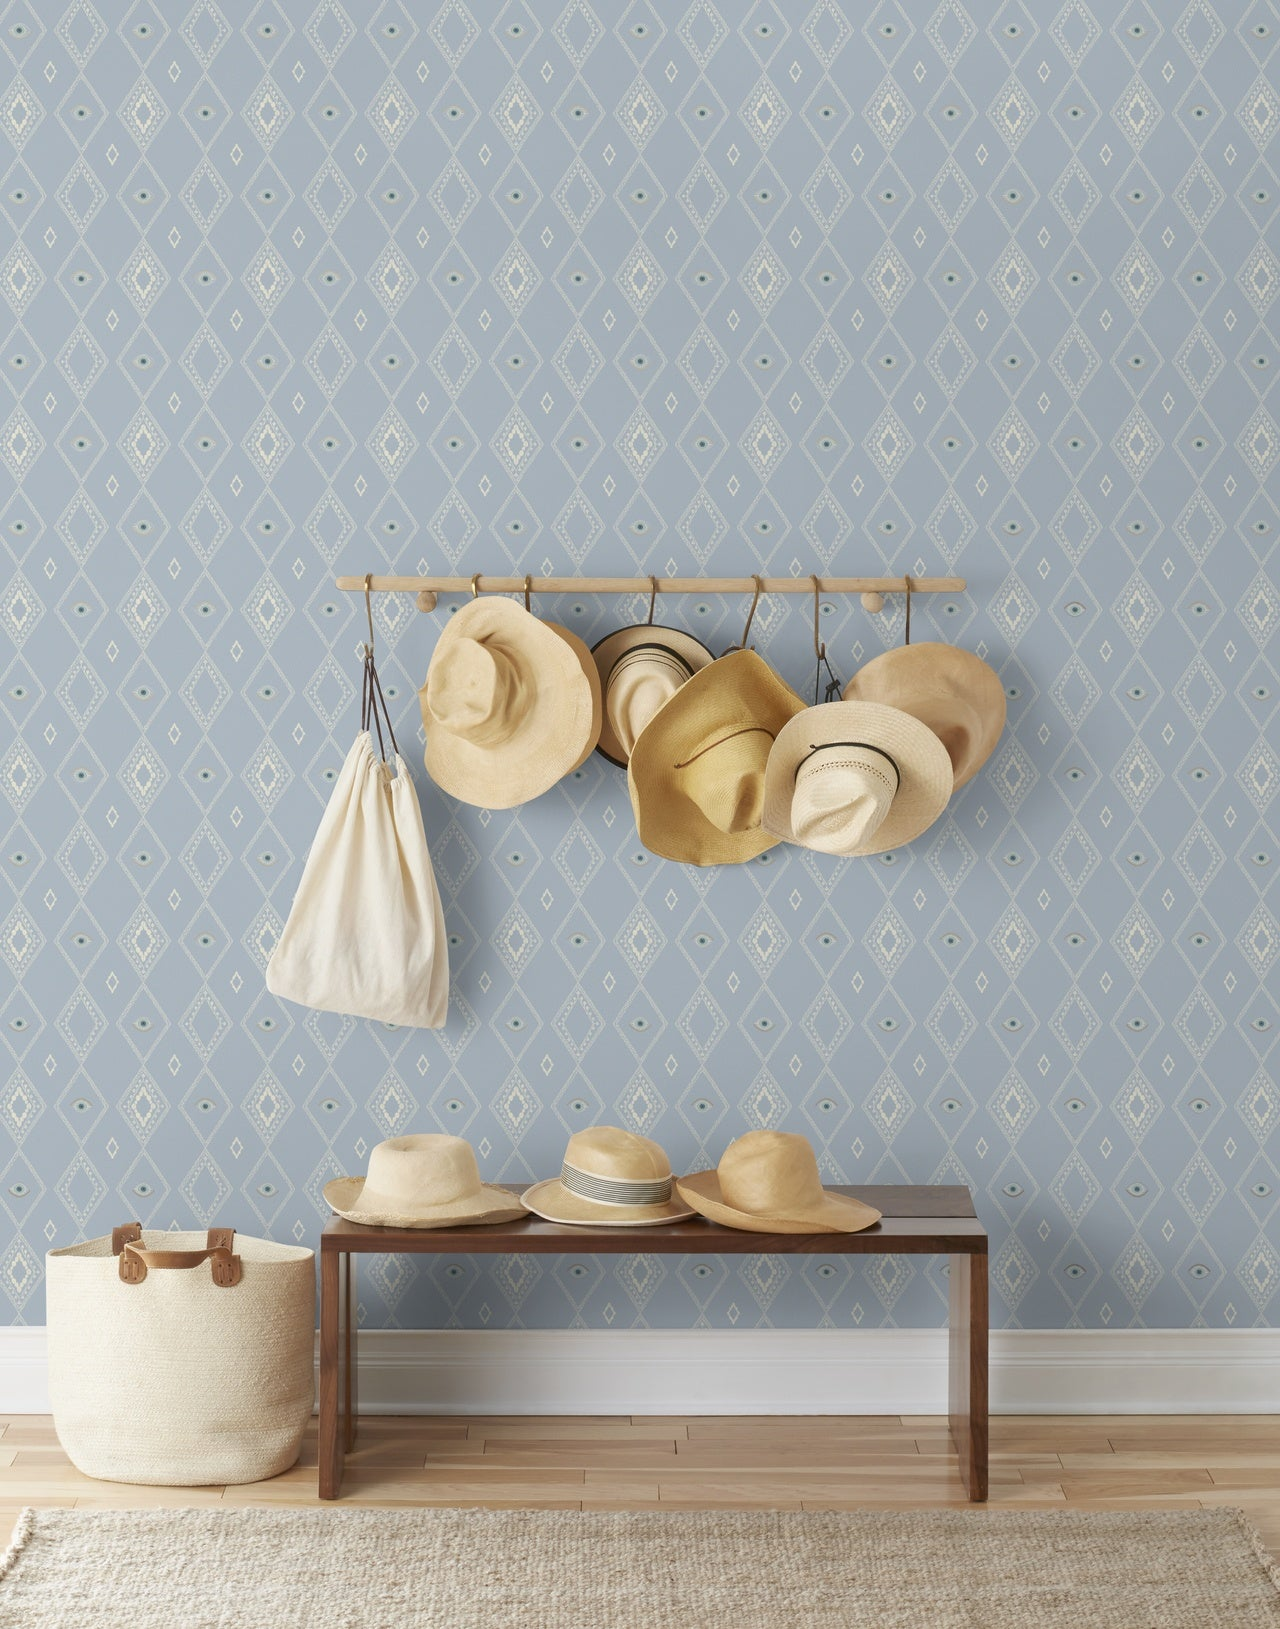 Evil Eye wallpaper in Mist by Coral & Tusk for Hygge & West